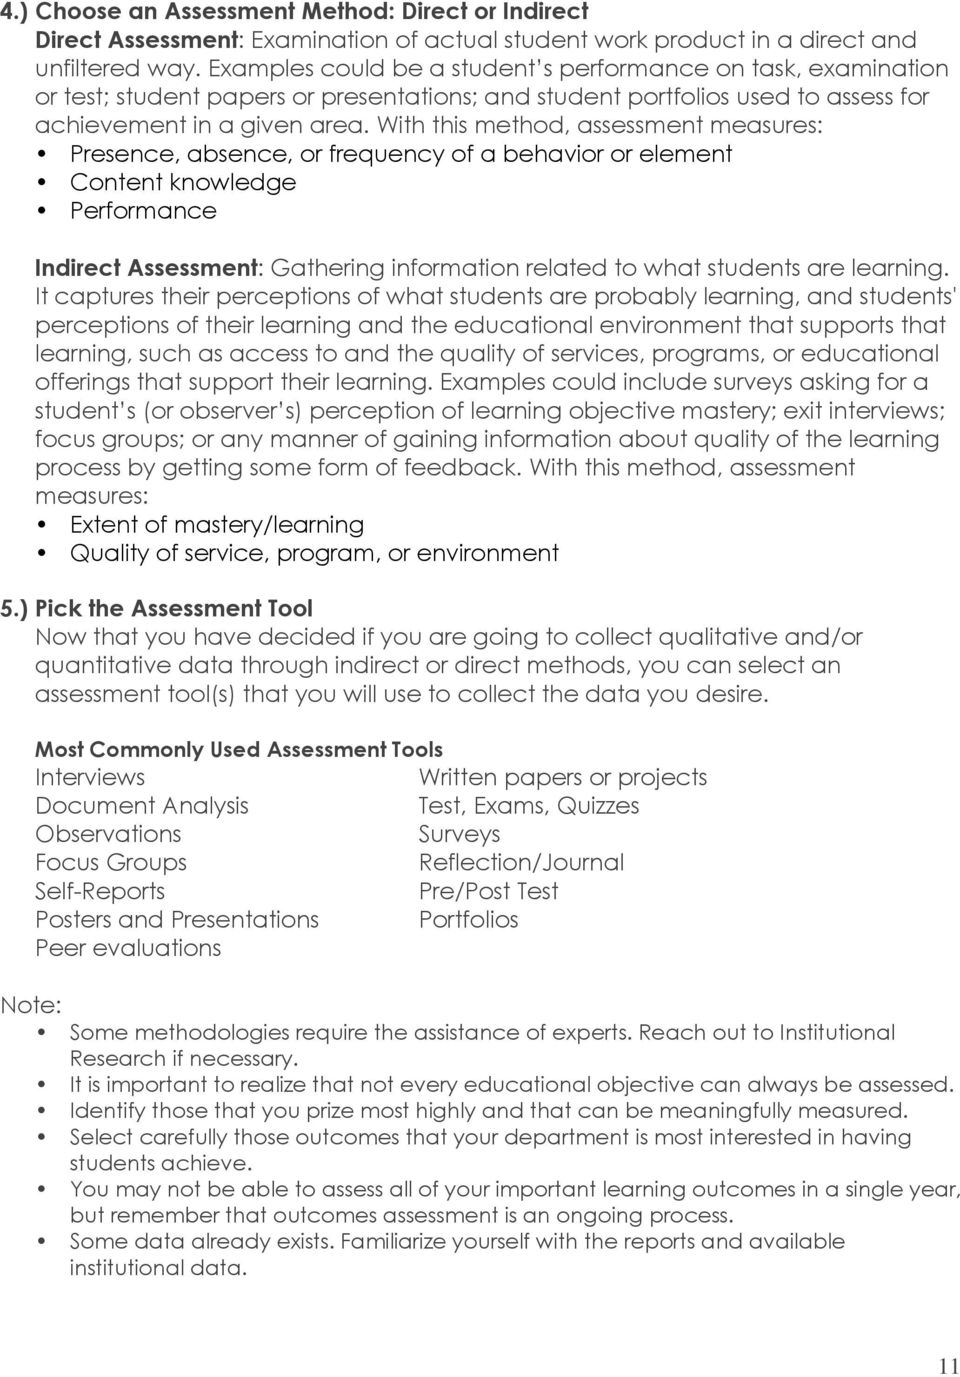 With this method, assessment measures: Presence, absence, or frequency of a behavior or element Content knowledge Performance Indirect Assessment: Gathering information related to what students are